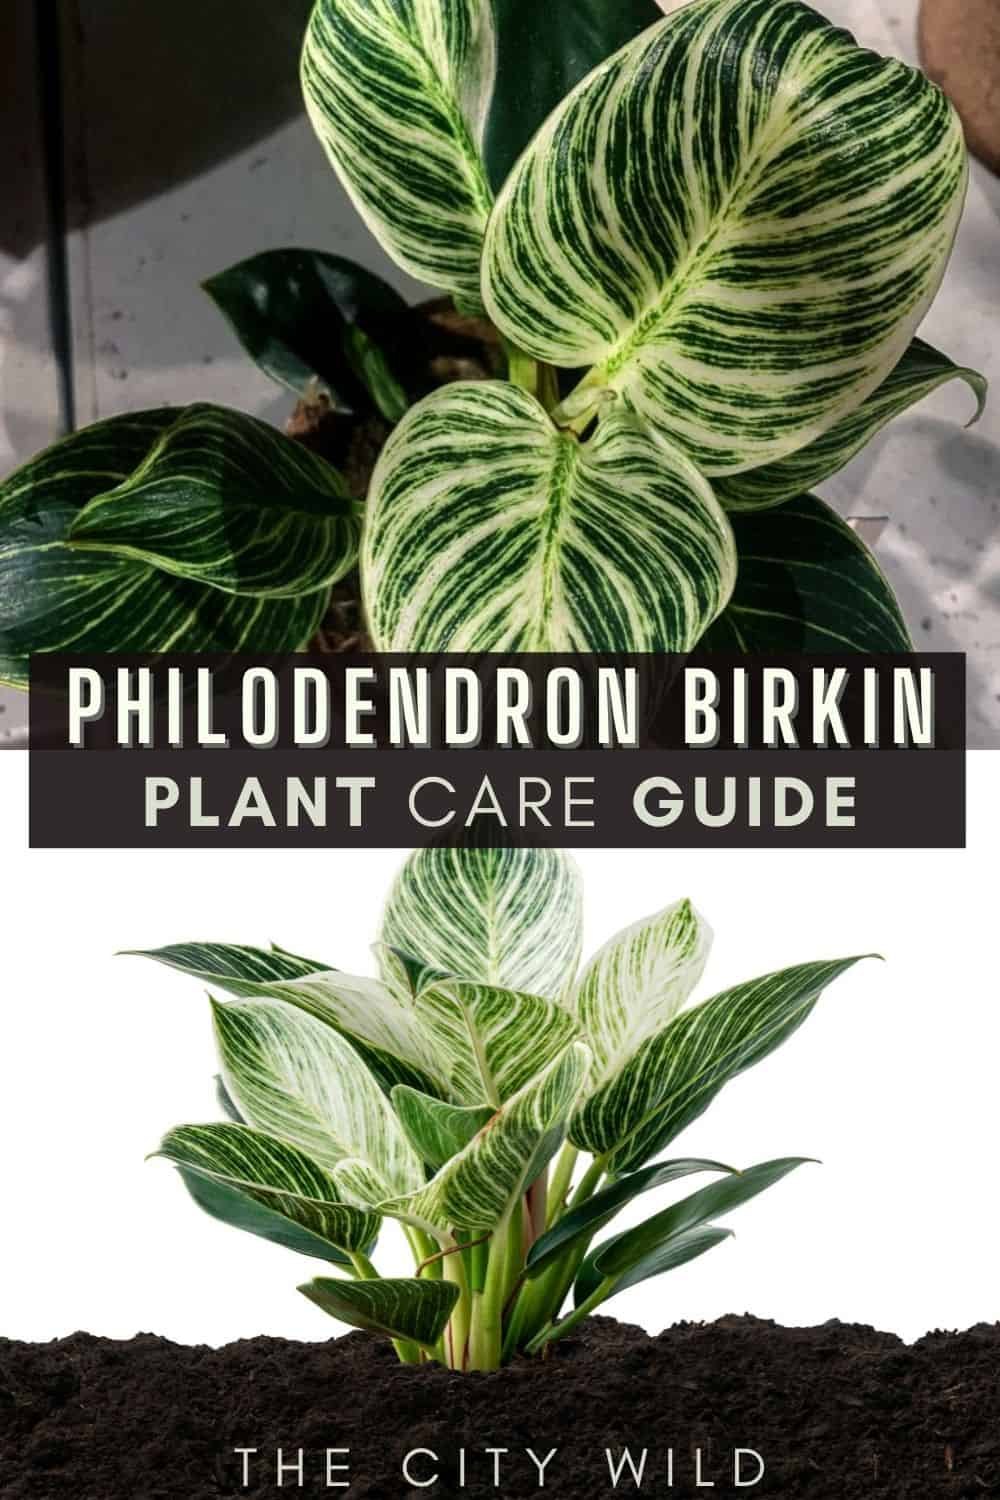 Philodendron Birkin Care Guide/ philodendron propagation, watering hacks and care tips